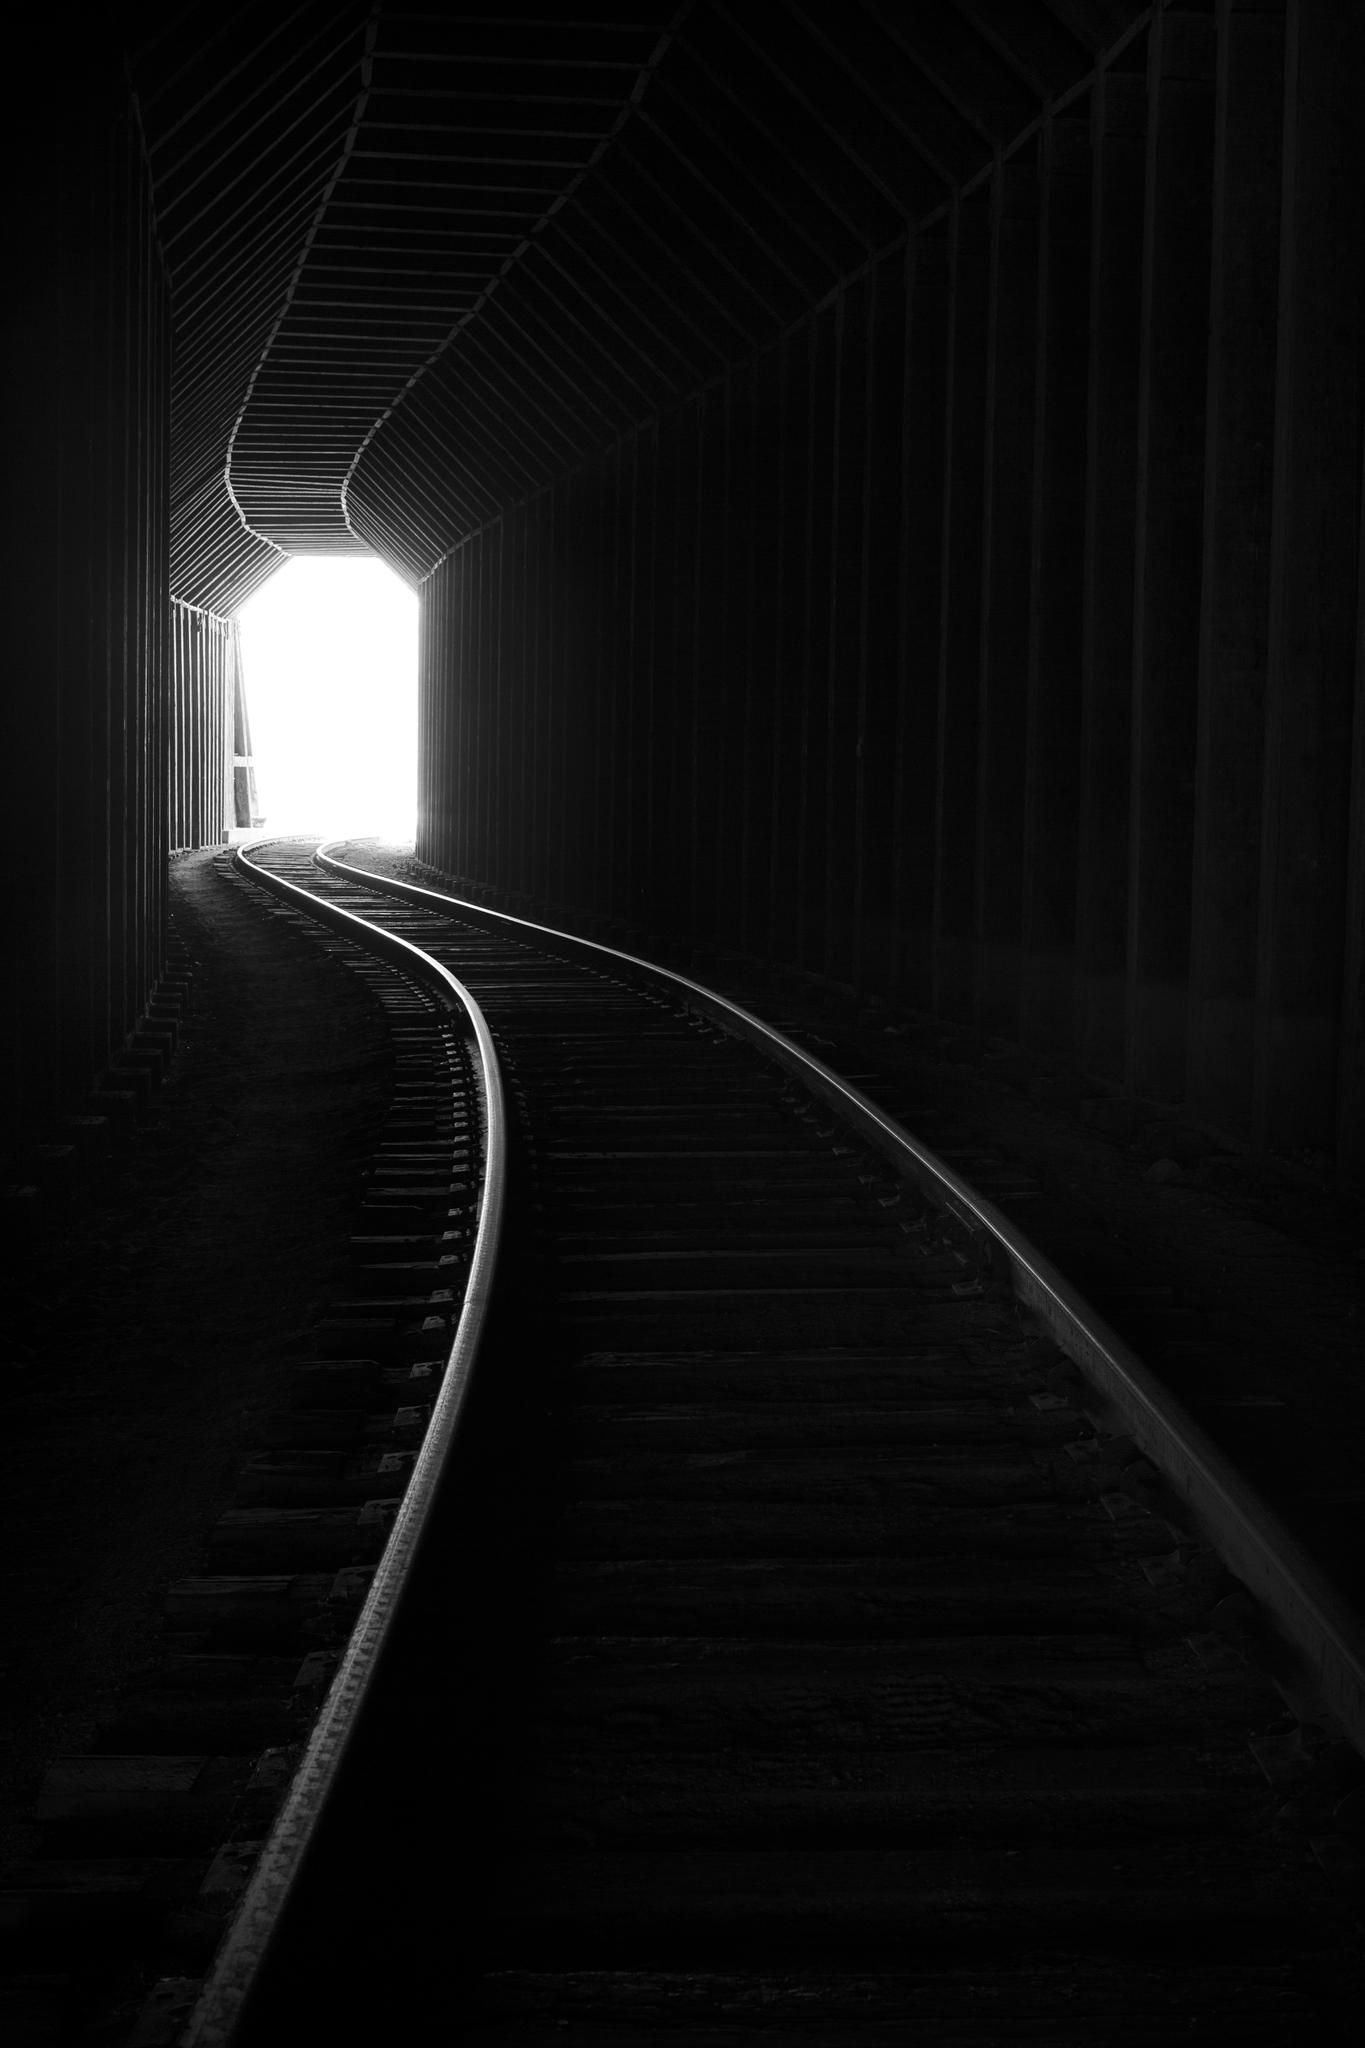 Through the train tunnel in black and white